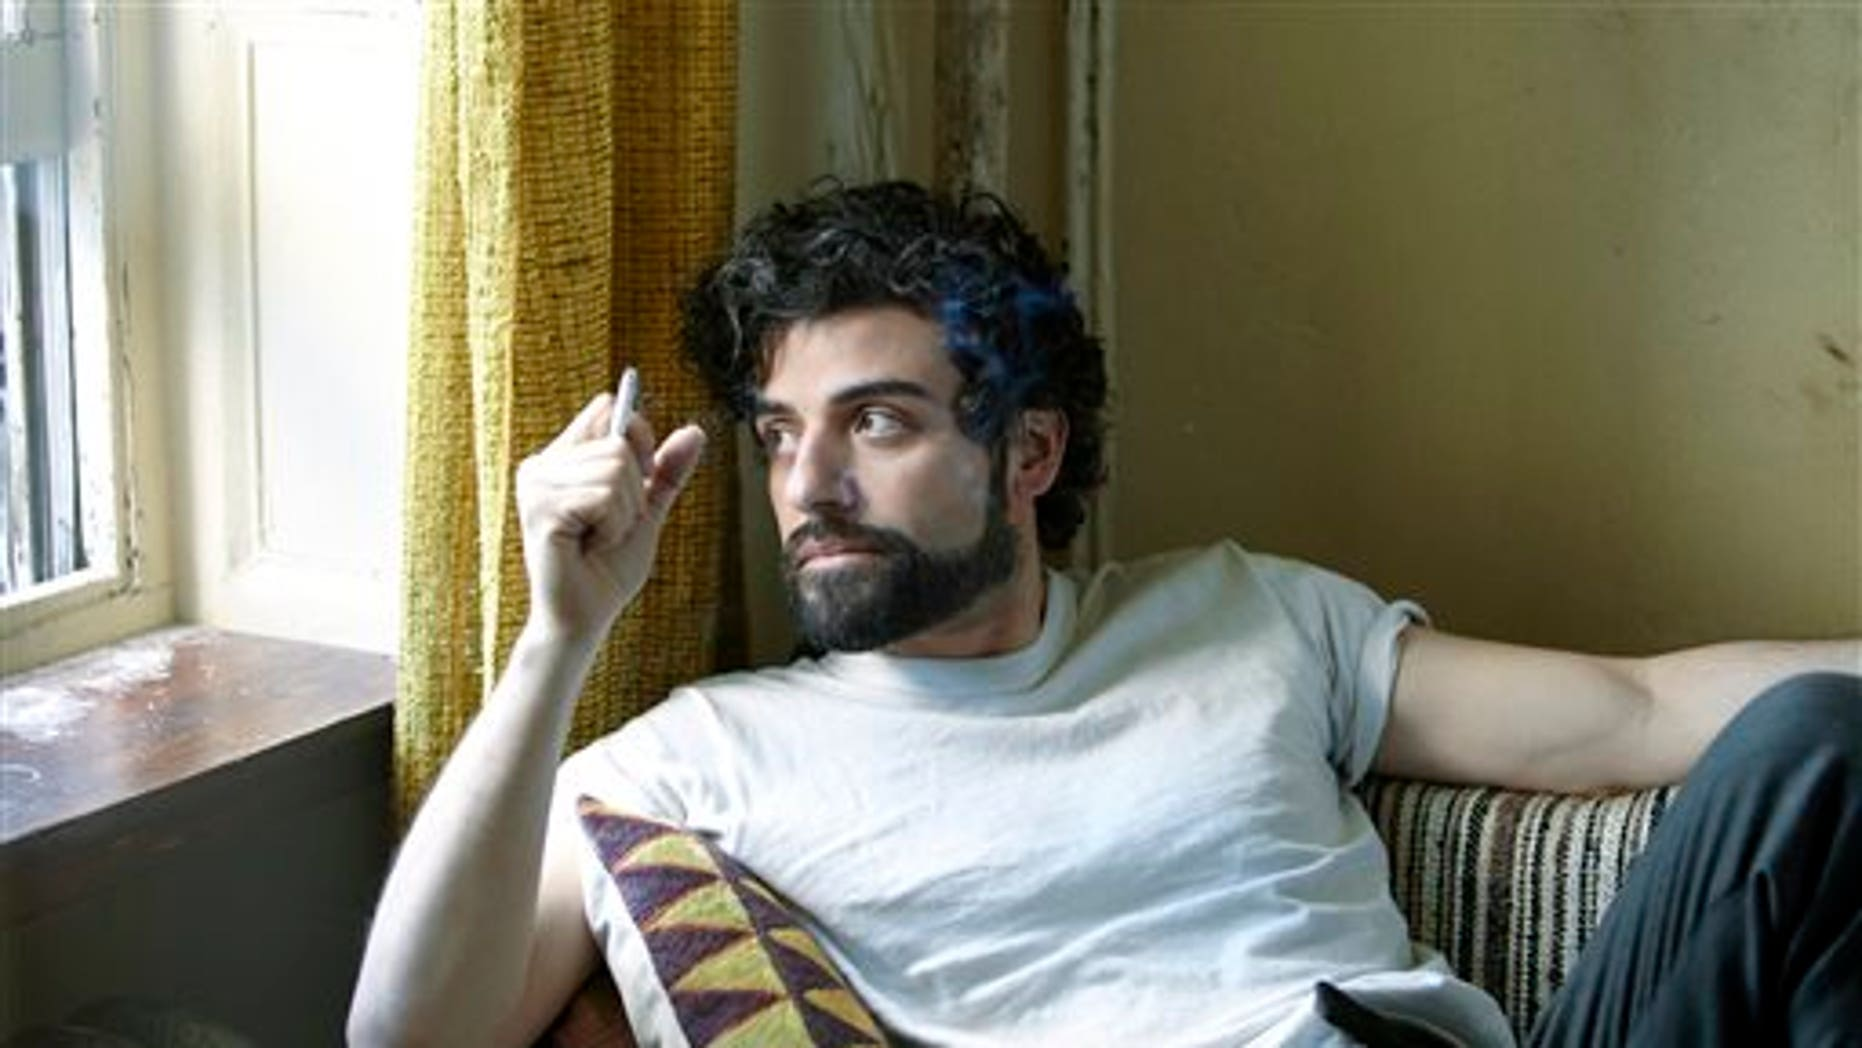 """This film image released by CBS FIlms shows Oscar Isaac in a scene from """"Inside Llewyn Davis."""" Isaac was nominated for a Golden Globe for best actor in a motion picture musical or comedy for his role in the film on Thursday, Dec. 12, 2013.  The 71st annual Golden Globes will air on Sunday, Jan. 12. (AP Photo/CBS FIlms, Alison Rosa)"""